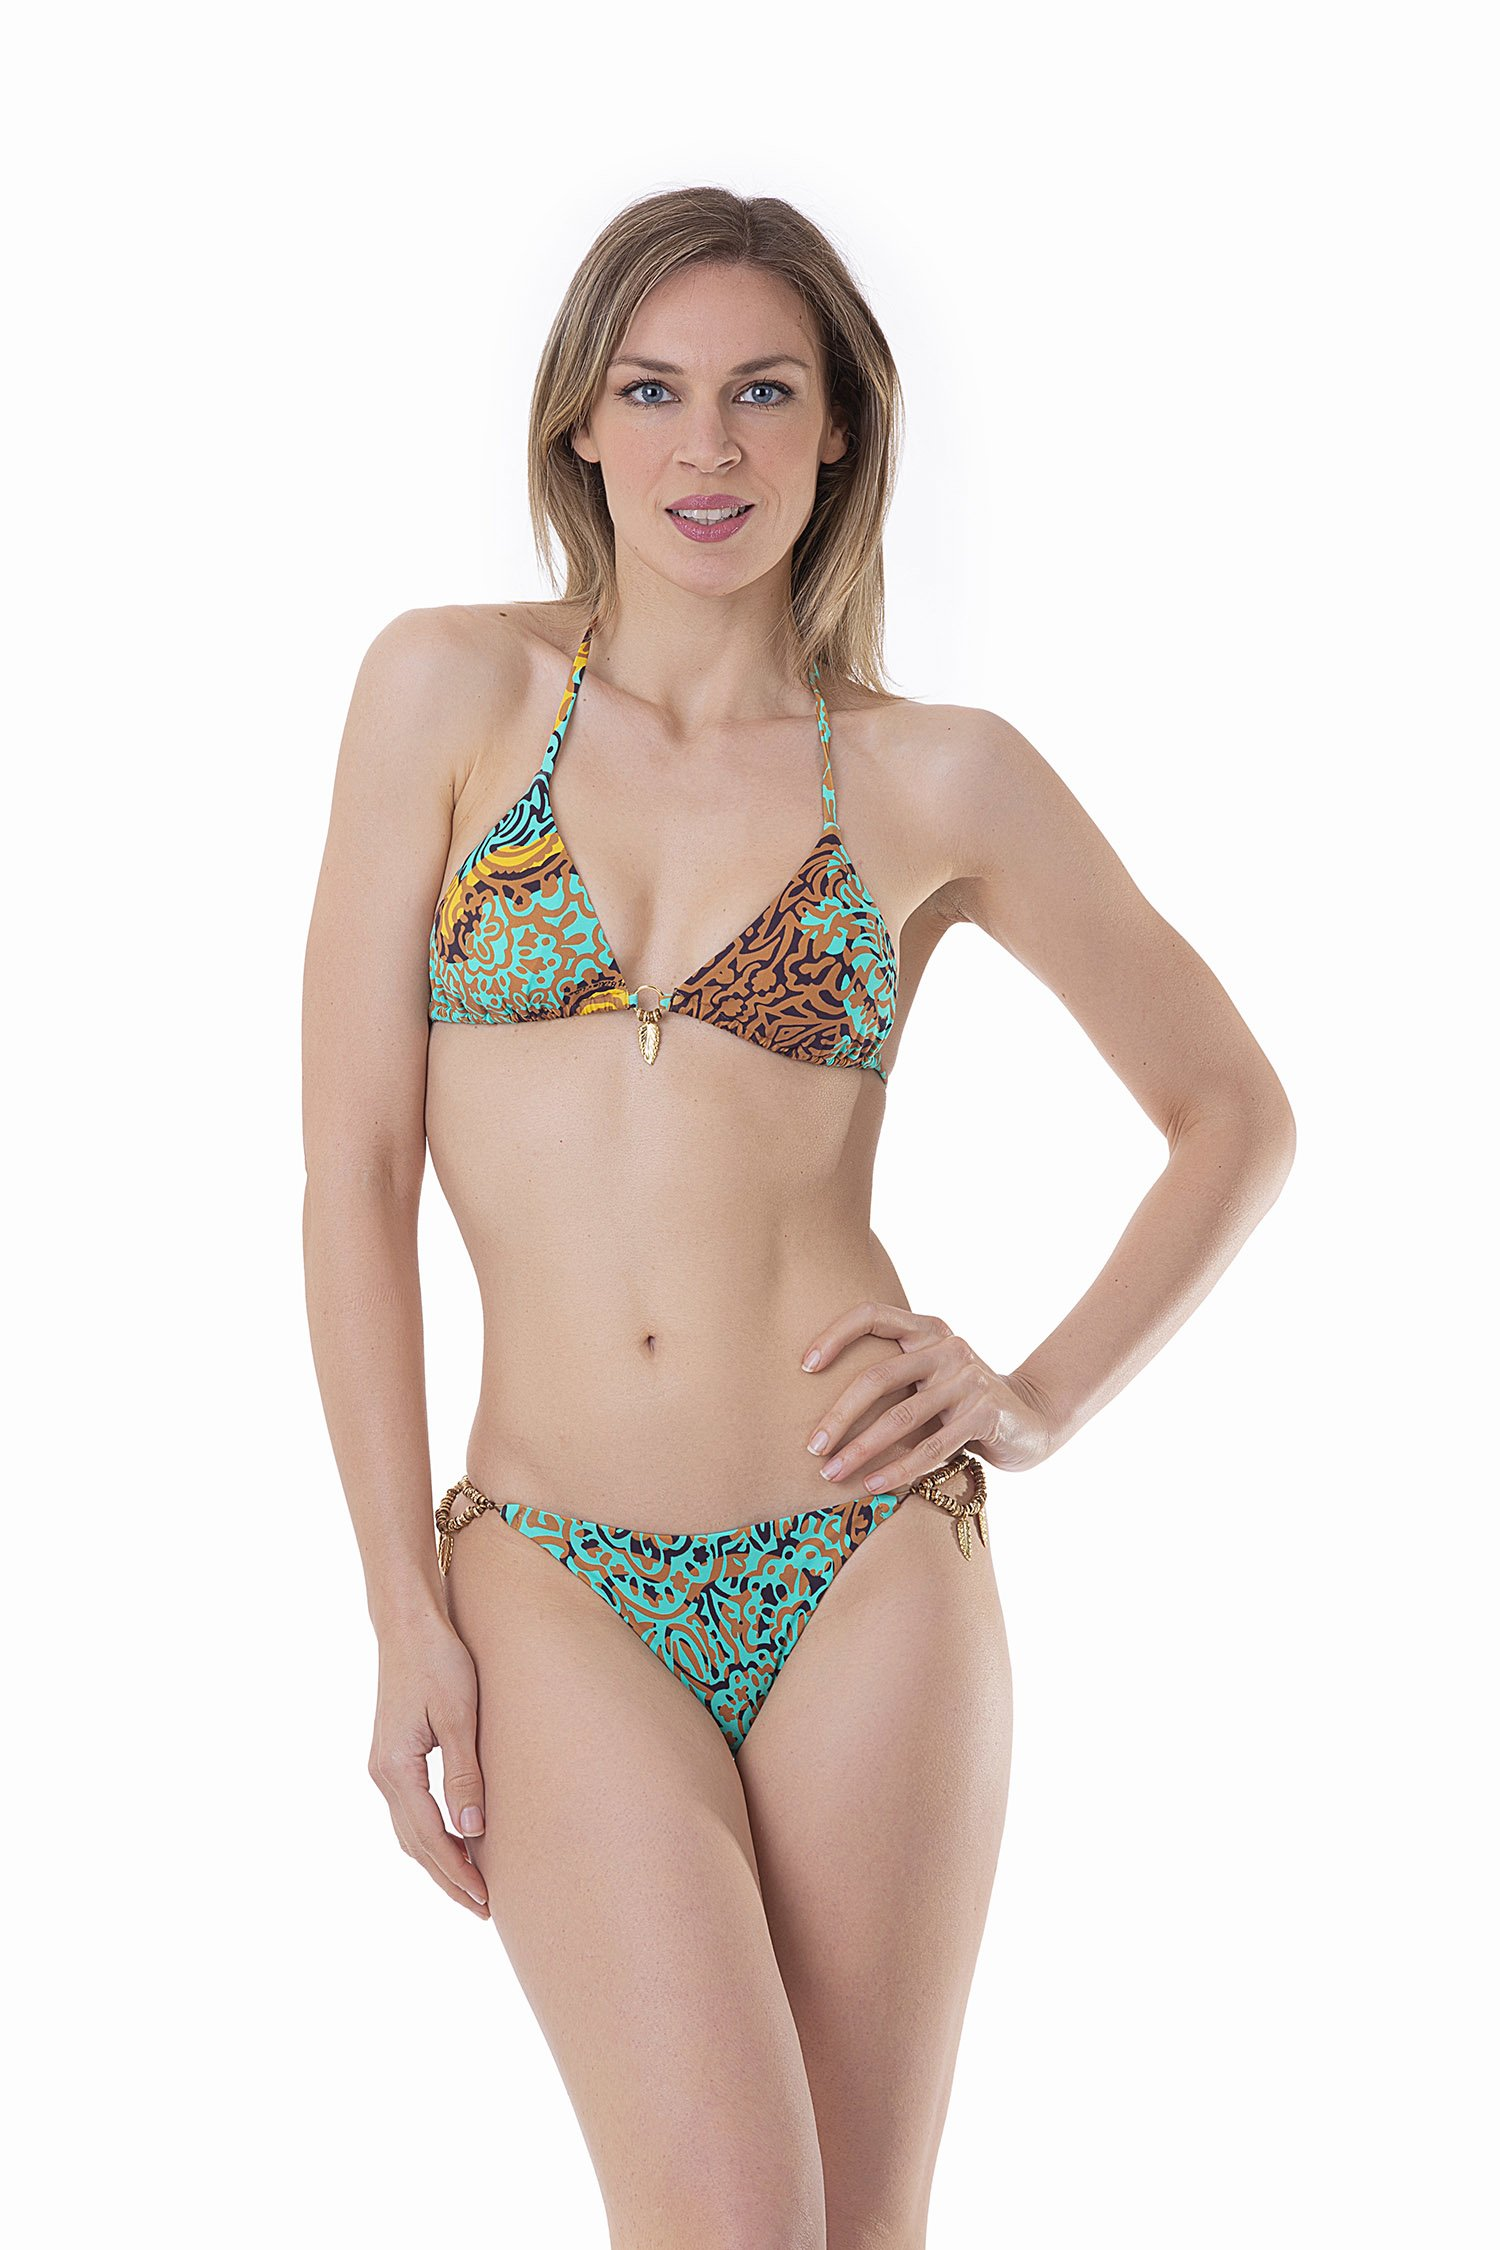 LUXE PRINTED TRIANGLE BIKINI WITH COSTUME JEWELLERY - India Pop Marrone